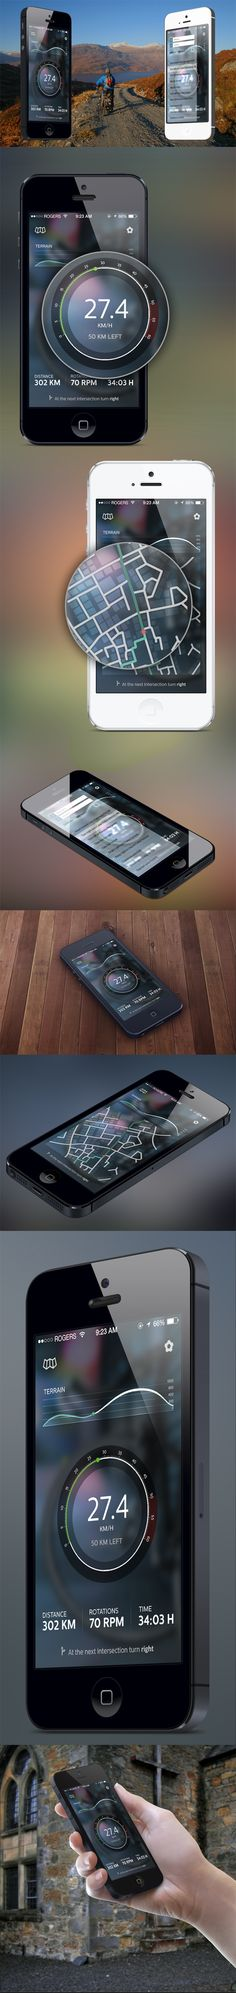 CyclingApp Concept by Stoica Alexandru, via Behance